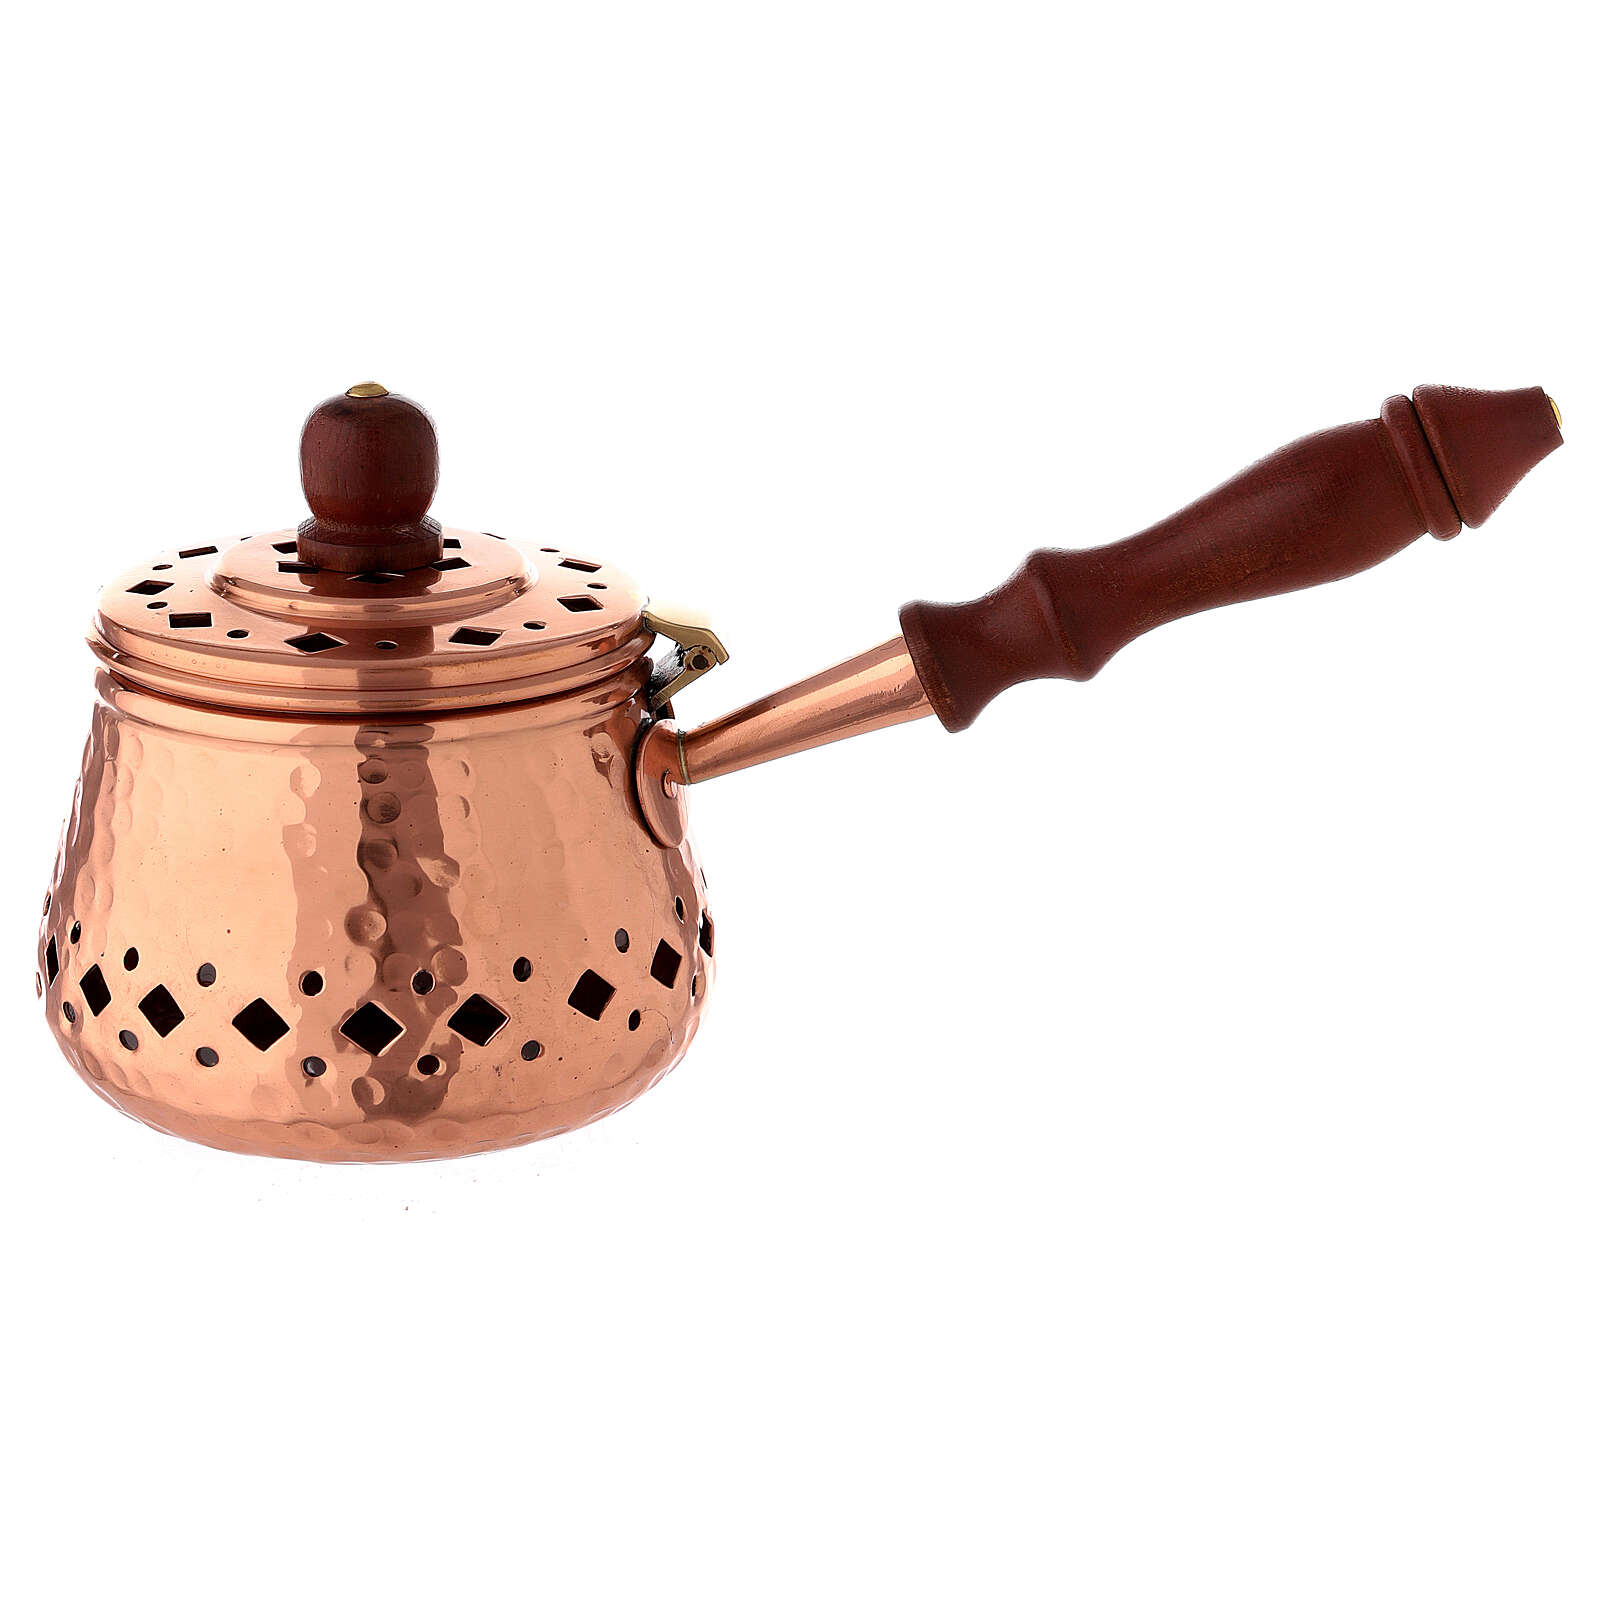 Copper incense pan with wooden handle, diameter 9 cm 3